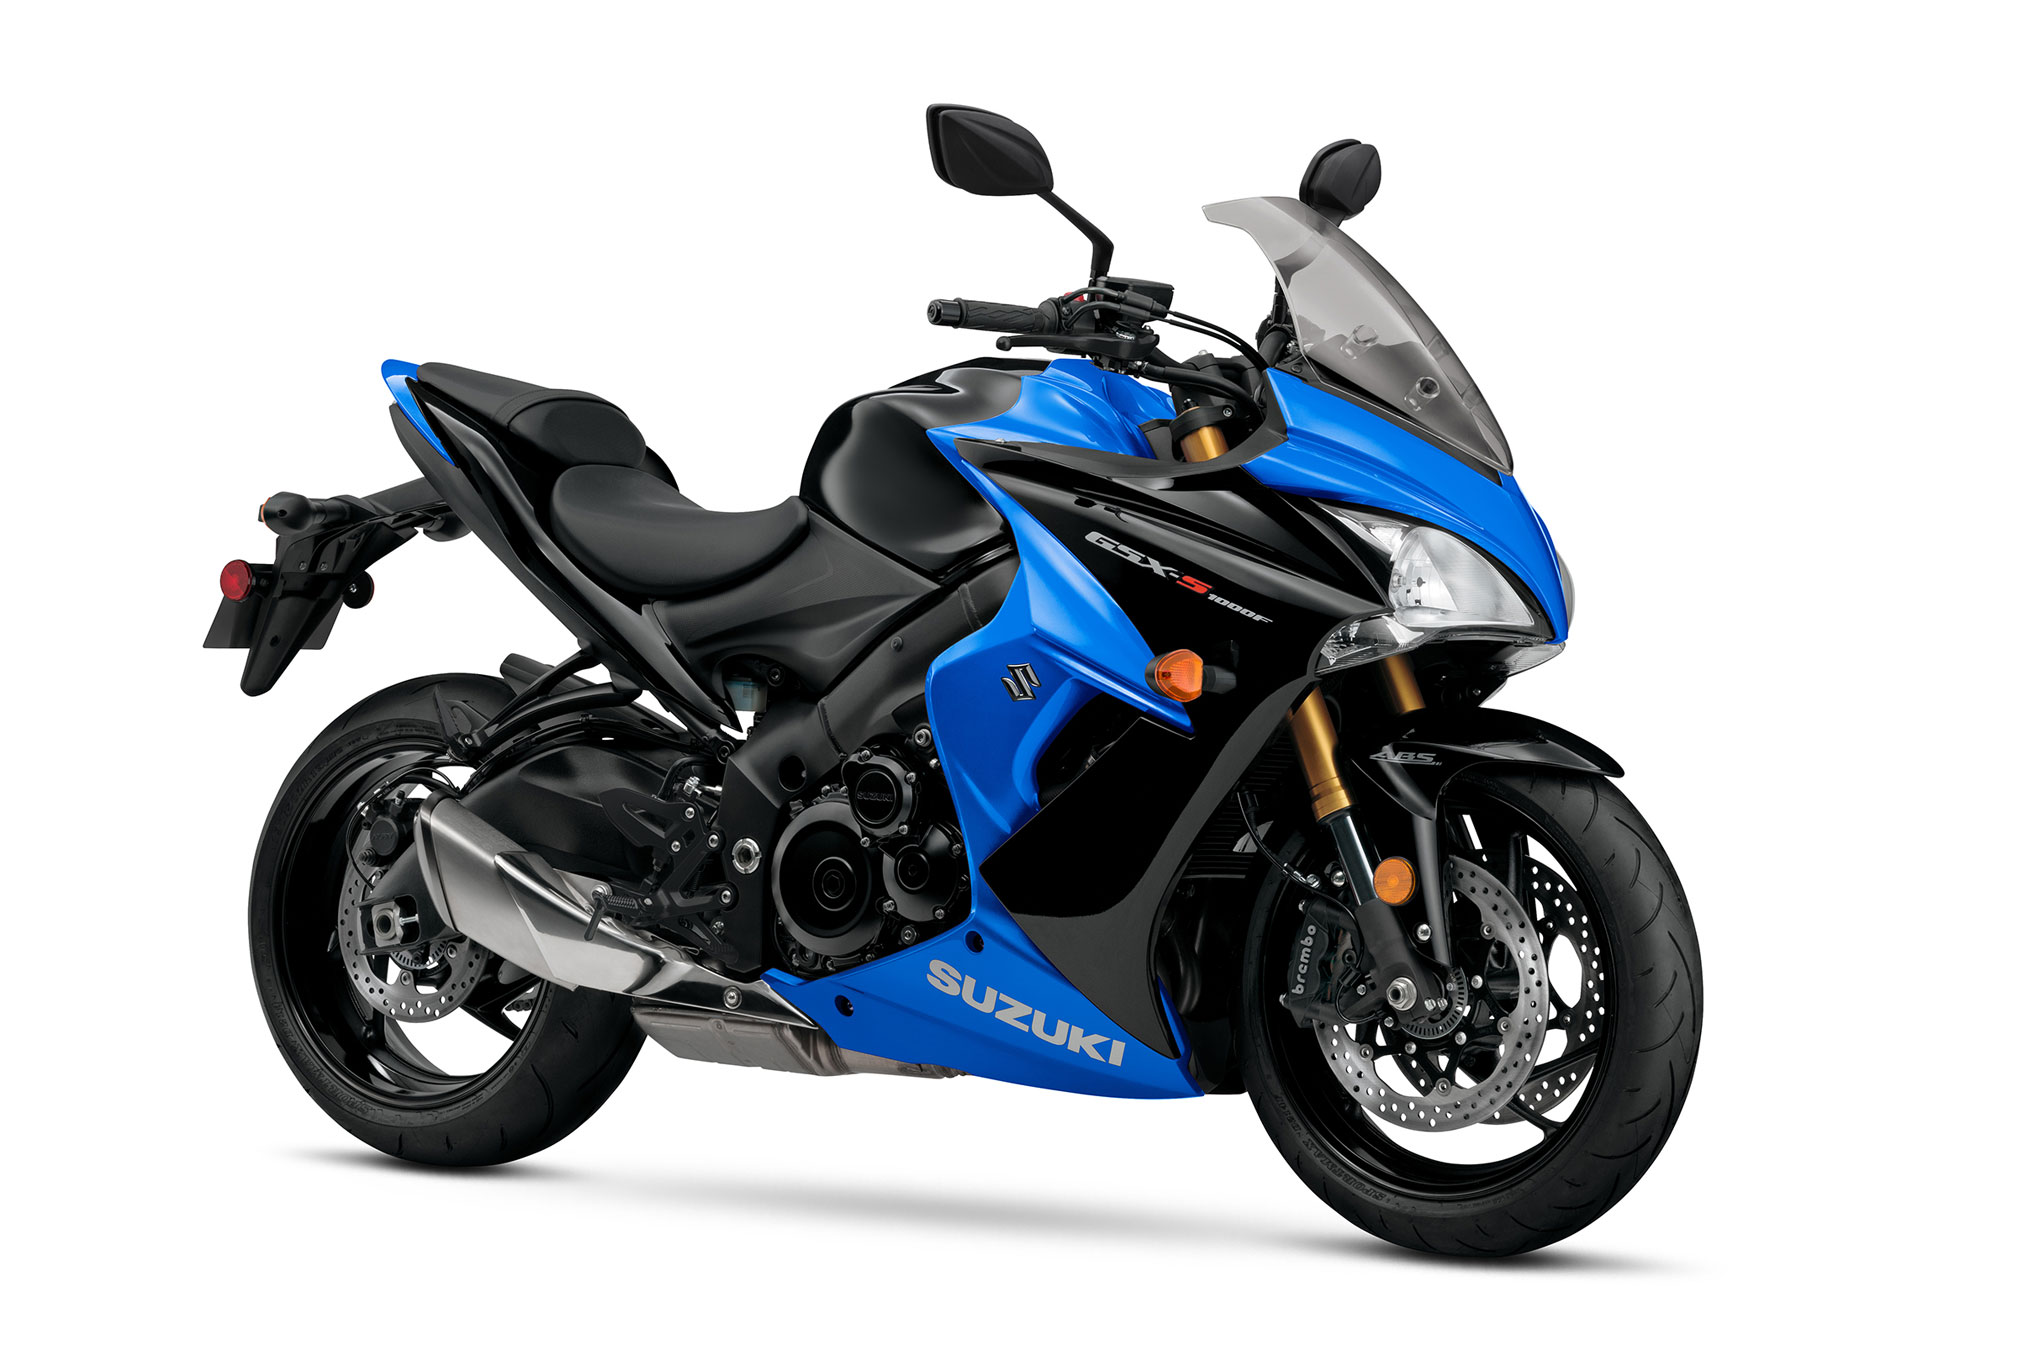 2018 suzuki gsx s1000f abs review totalmotorcycle. Black Bedroom Furniture Sets. Home Design Ideas